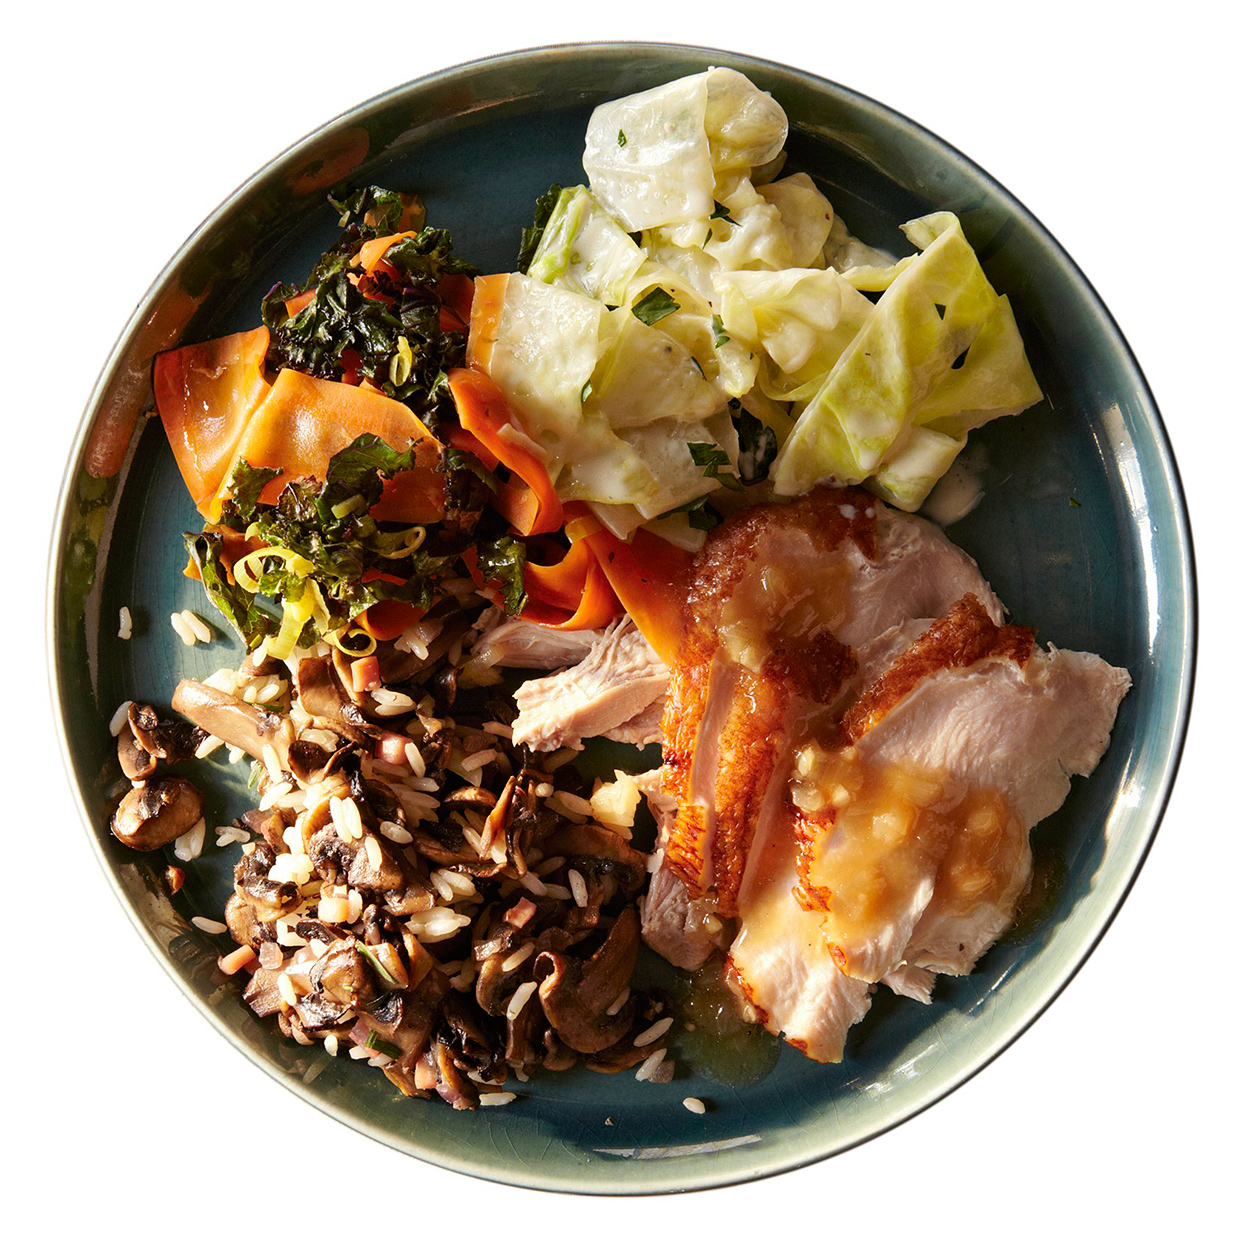 creamed cabbage, carrots and kale, wild rice stuffing and turkey on plate